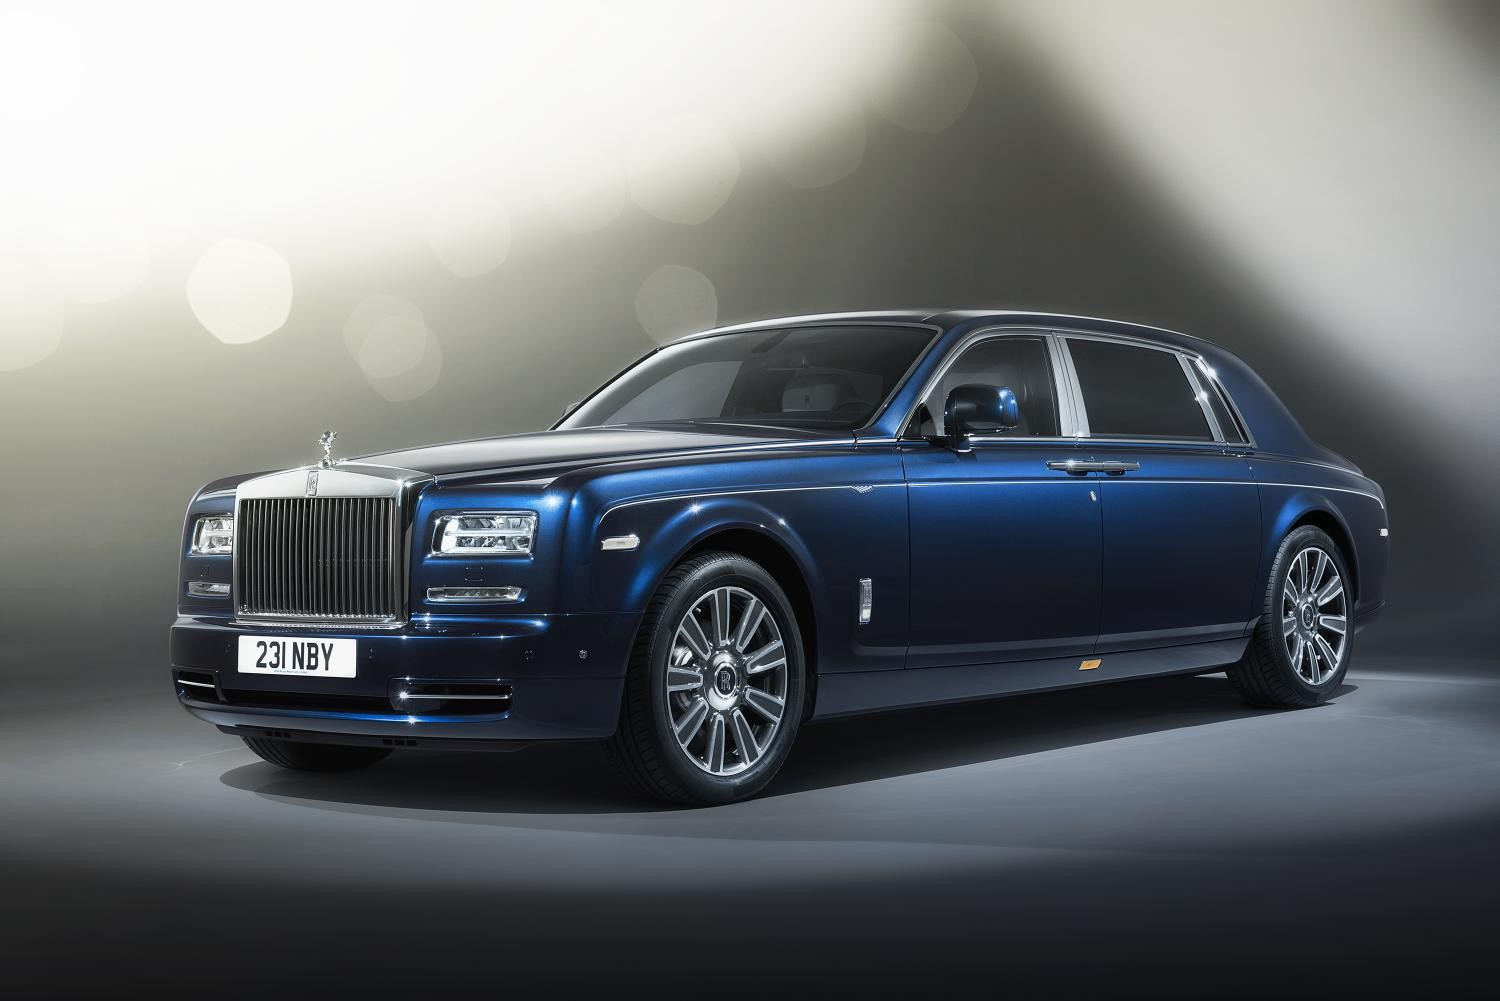 Rolls-Royce Phantom db